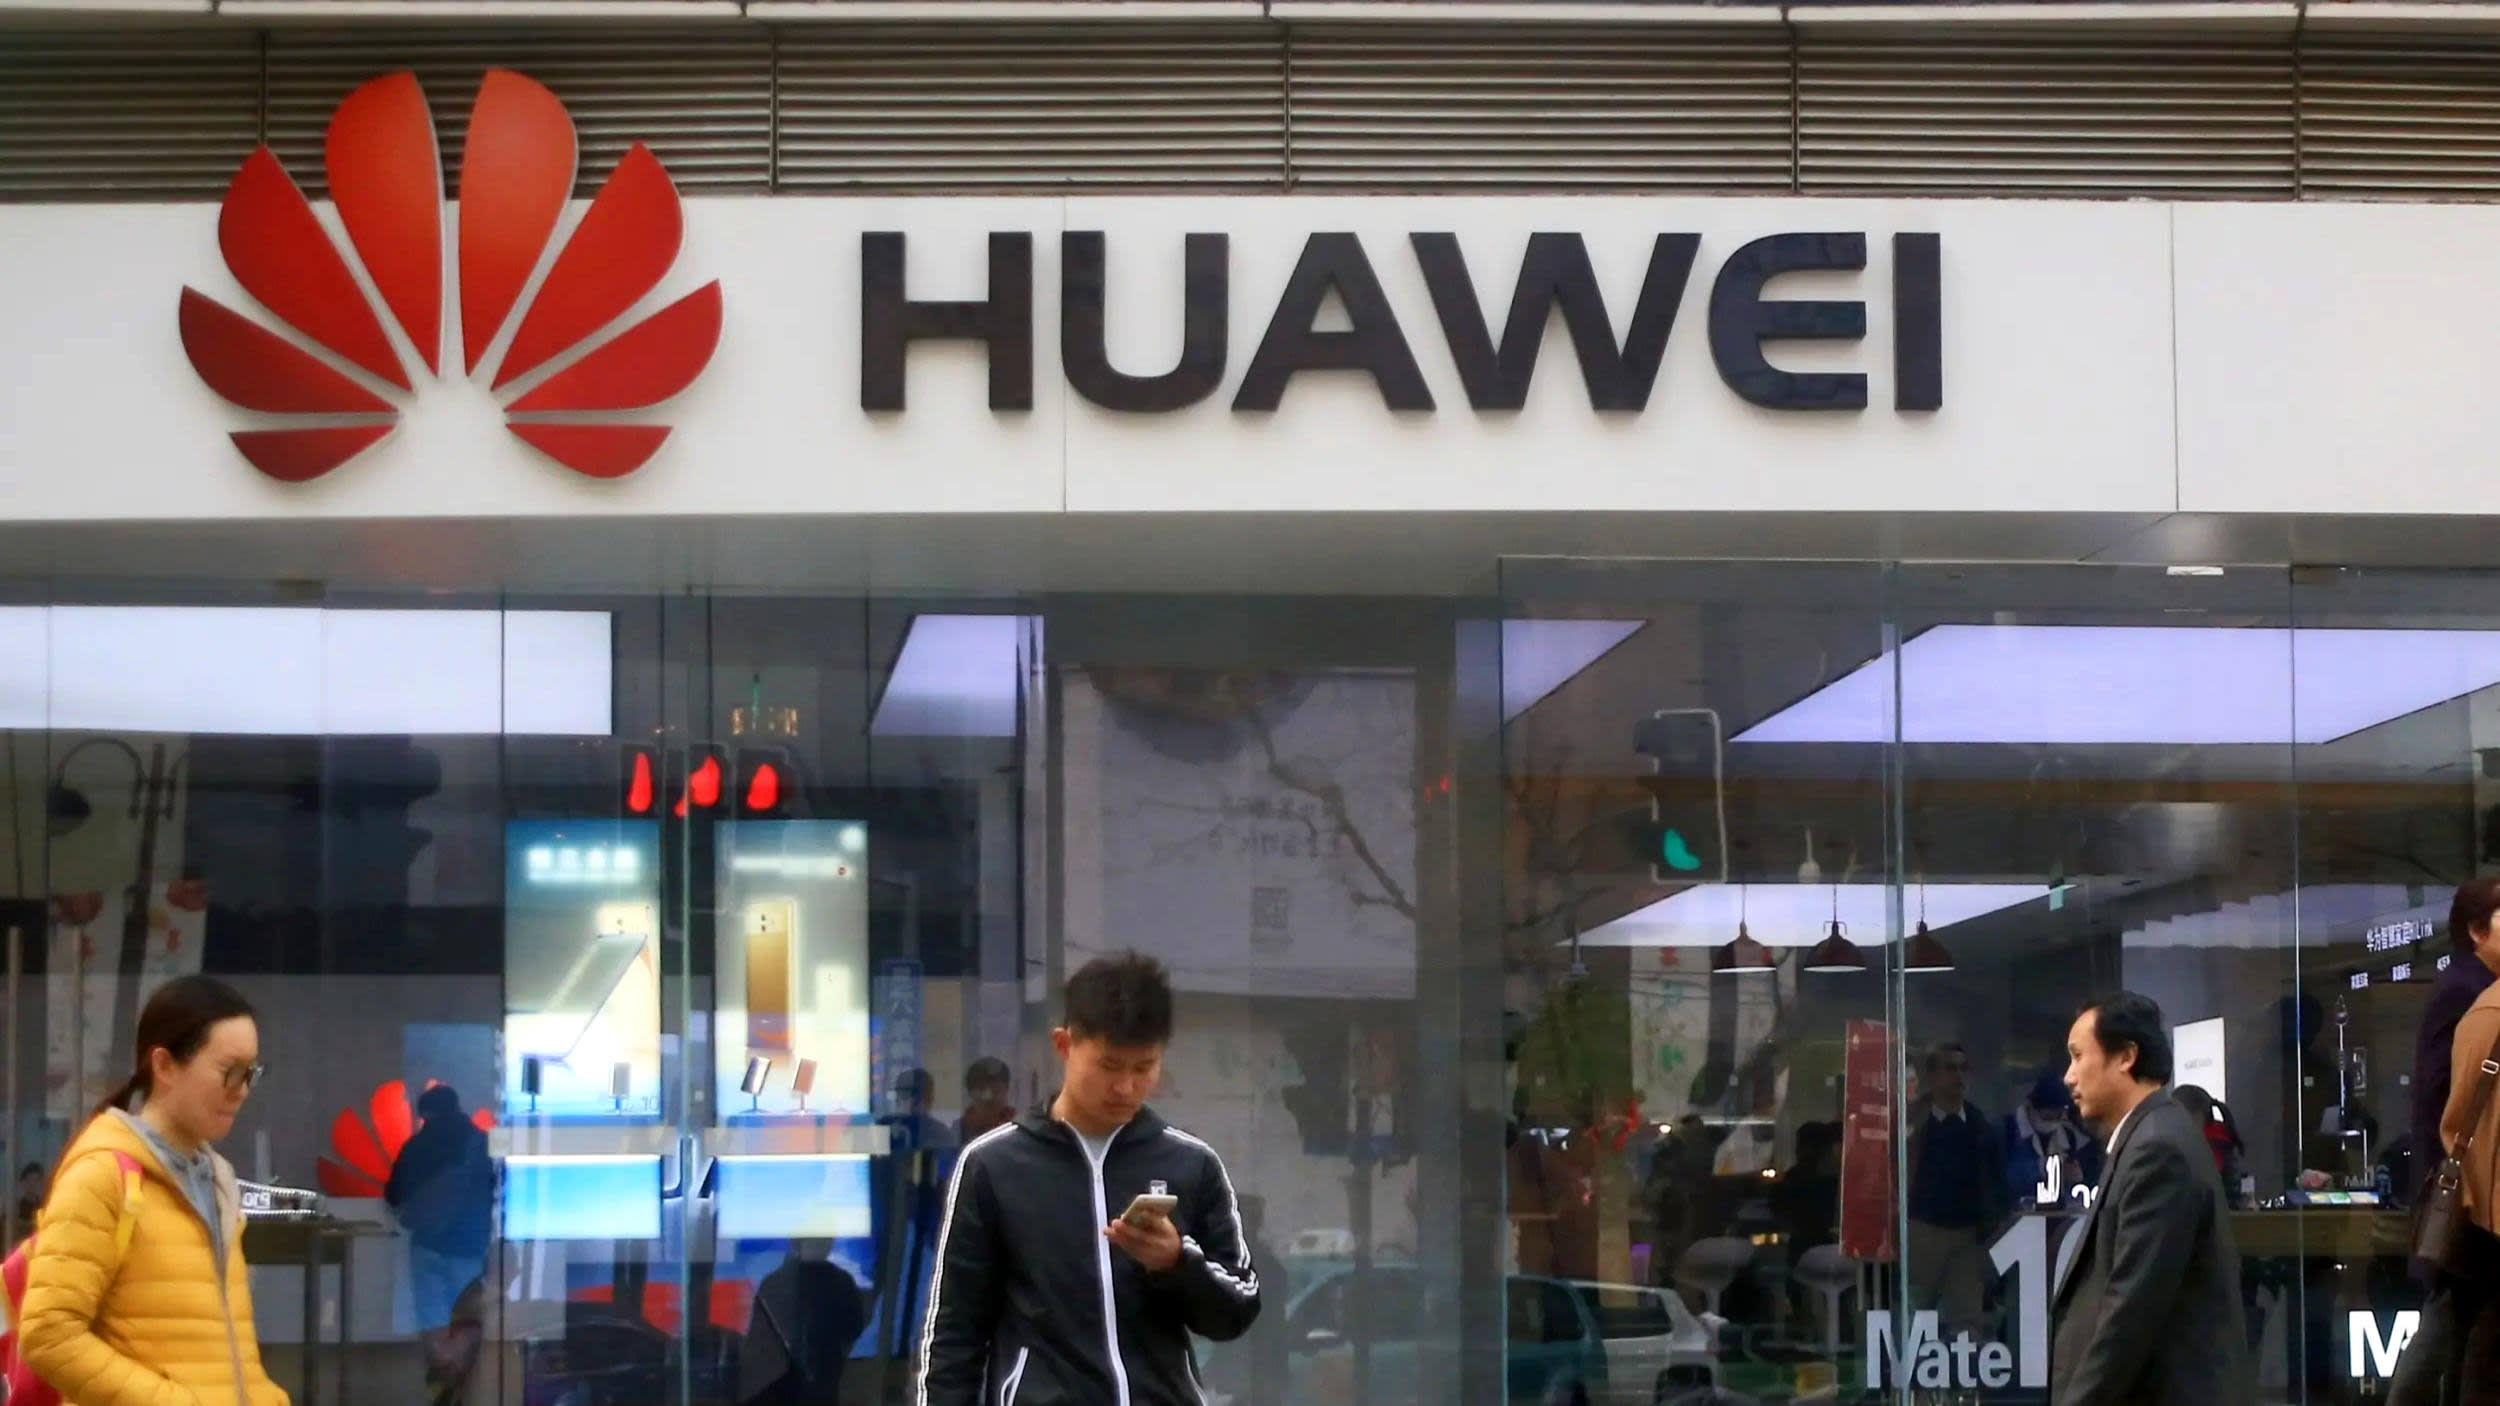 41b6a376c61405 Huawei shipped 59 million smartphones in Q1 2019 as revenue jumped 39% to  reach $27 billion